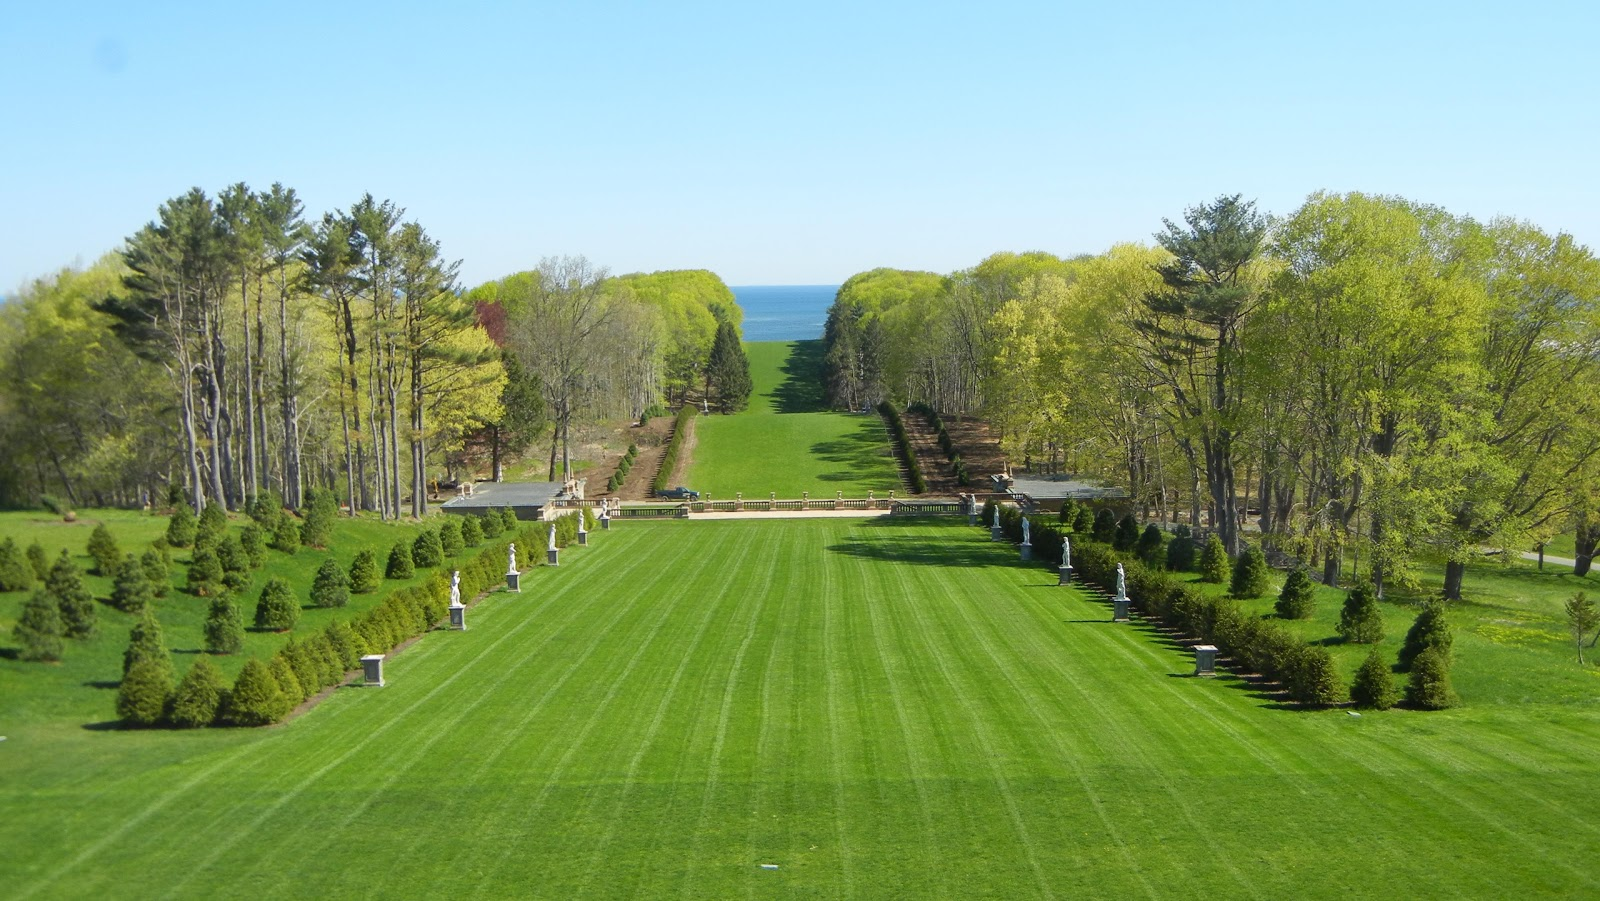 The Trustees of Reservations oversees 116 properties in Massachusetts, including the Crane Estate right along the shore in Ipswich. (Courtesy The Trustees)